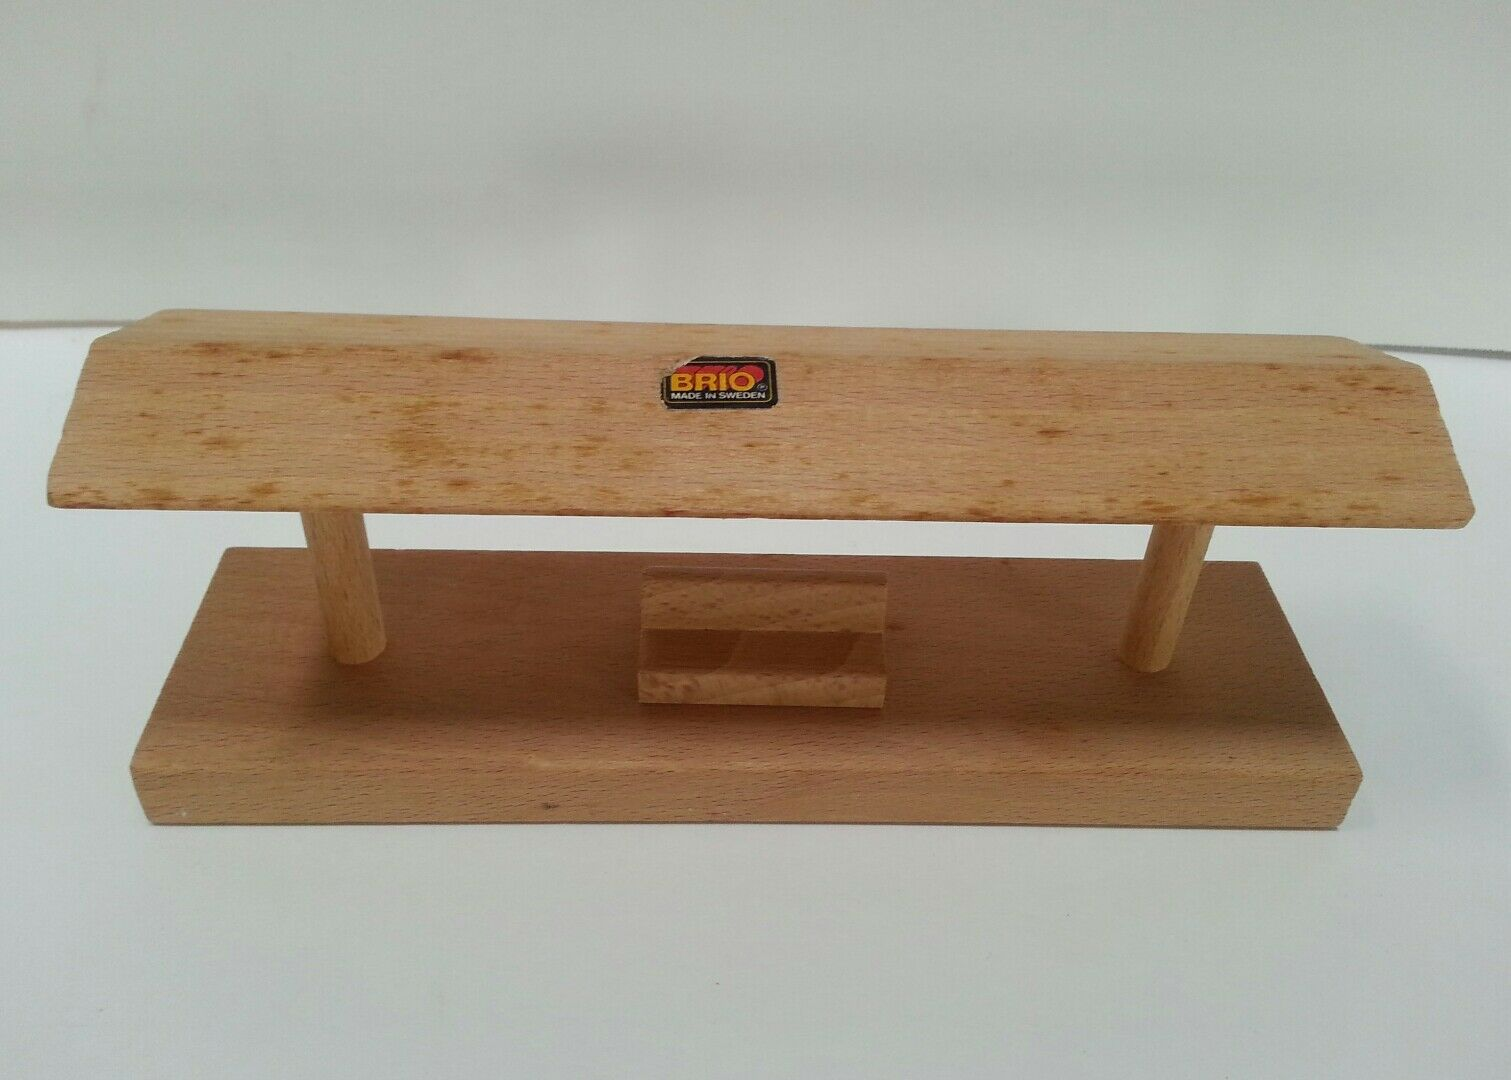 Made in Sweden Brio All-Wooden Old-Fashioned Train Station with Benches